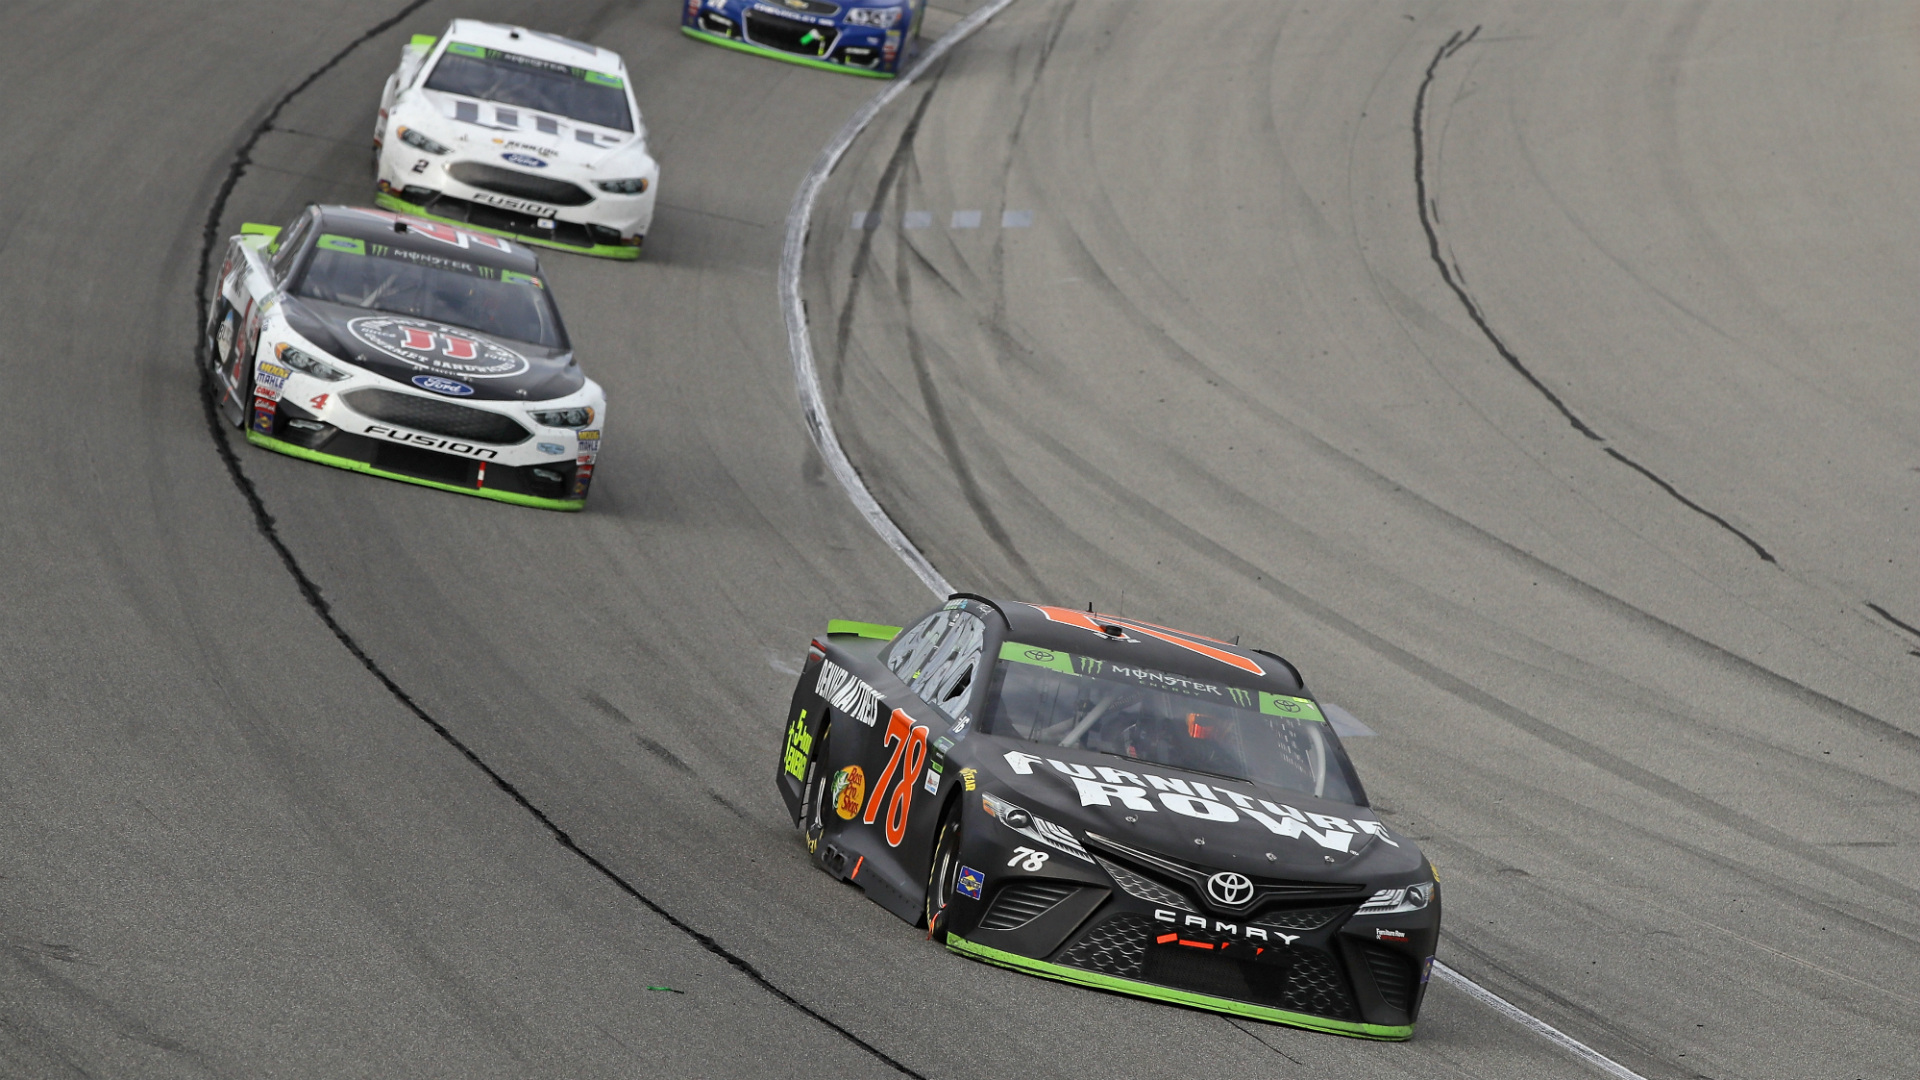 NASCAR at Charlotte: Odds, stats, prediction, sleepers, fantasy drivers for Bank of America 500